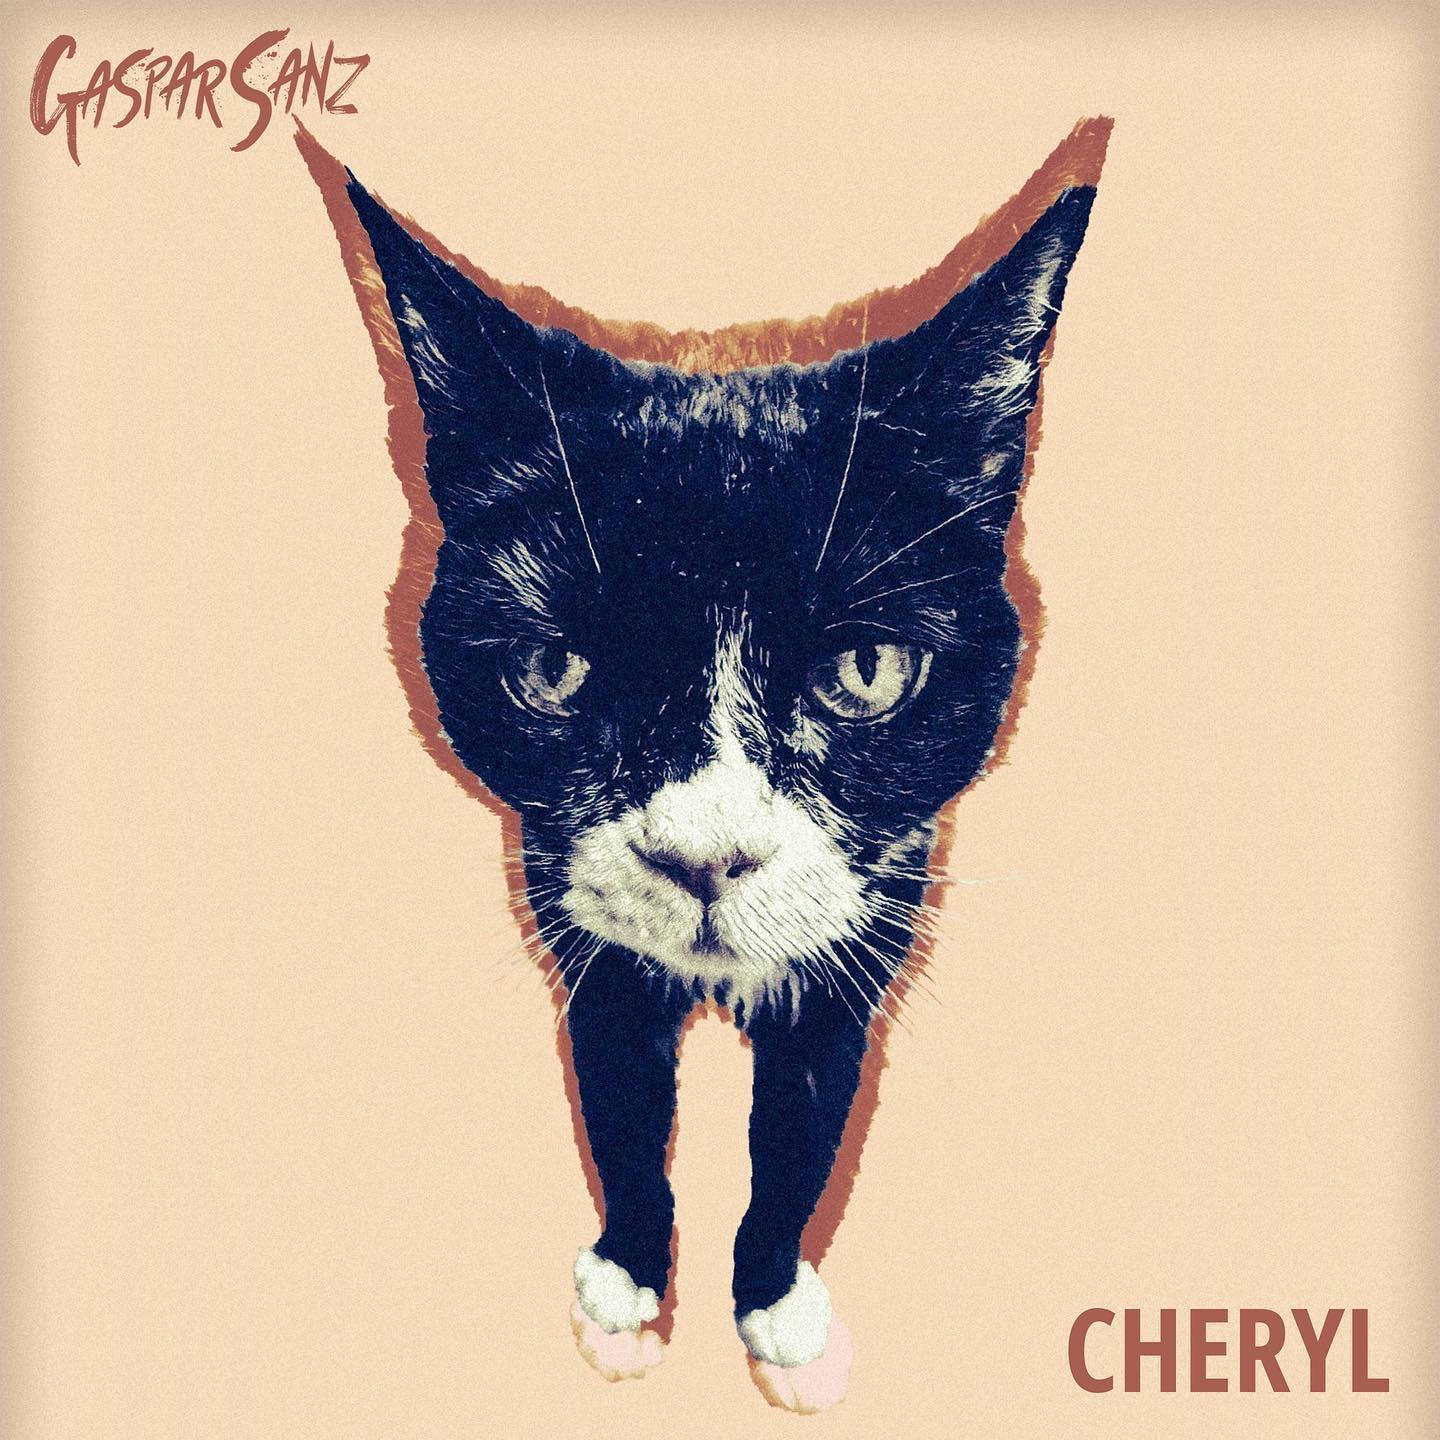 Indie Rockers Gaspar Sanz New Song Inspired by Cheryl the Cat